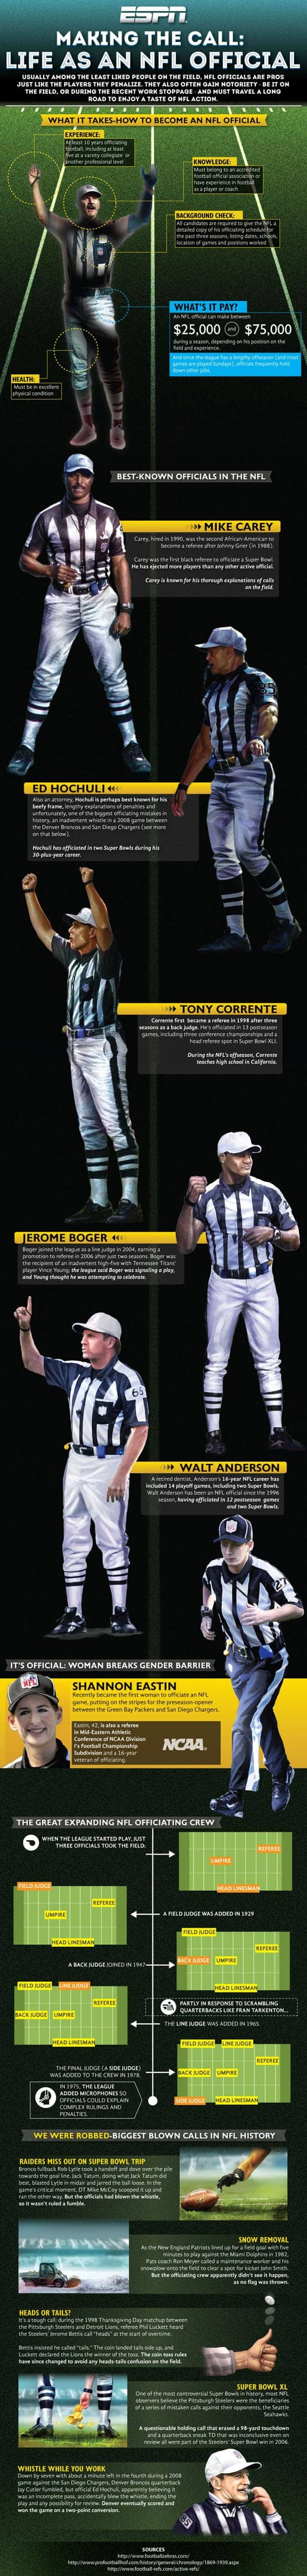 Life and times of an NFL official